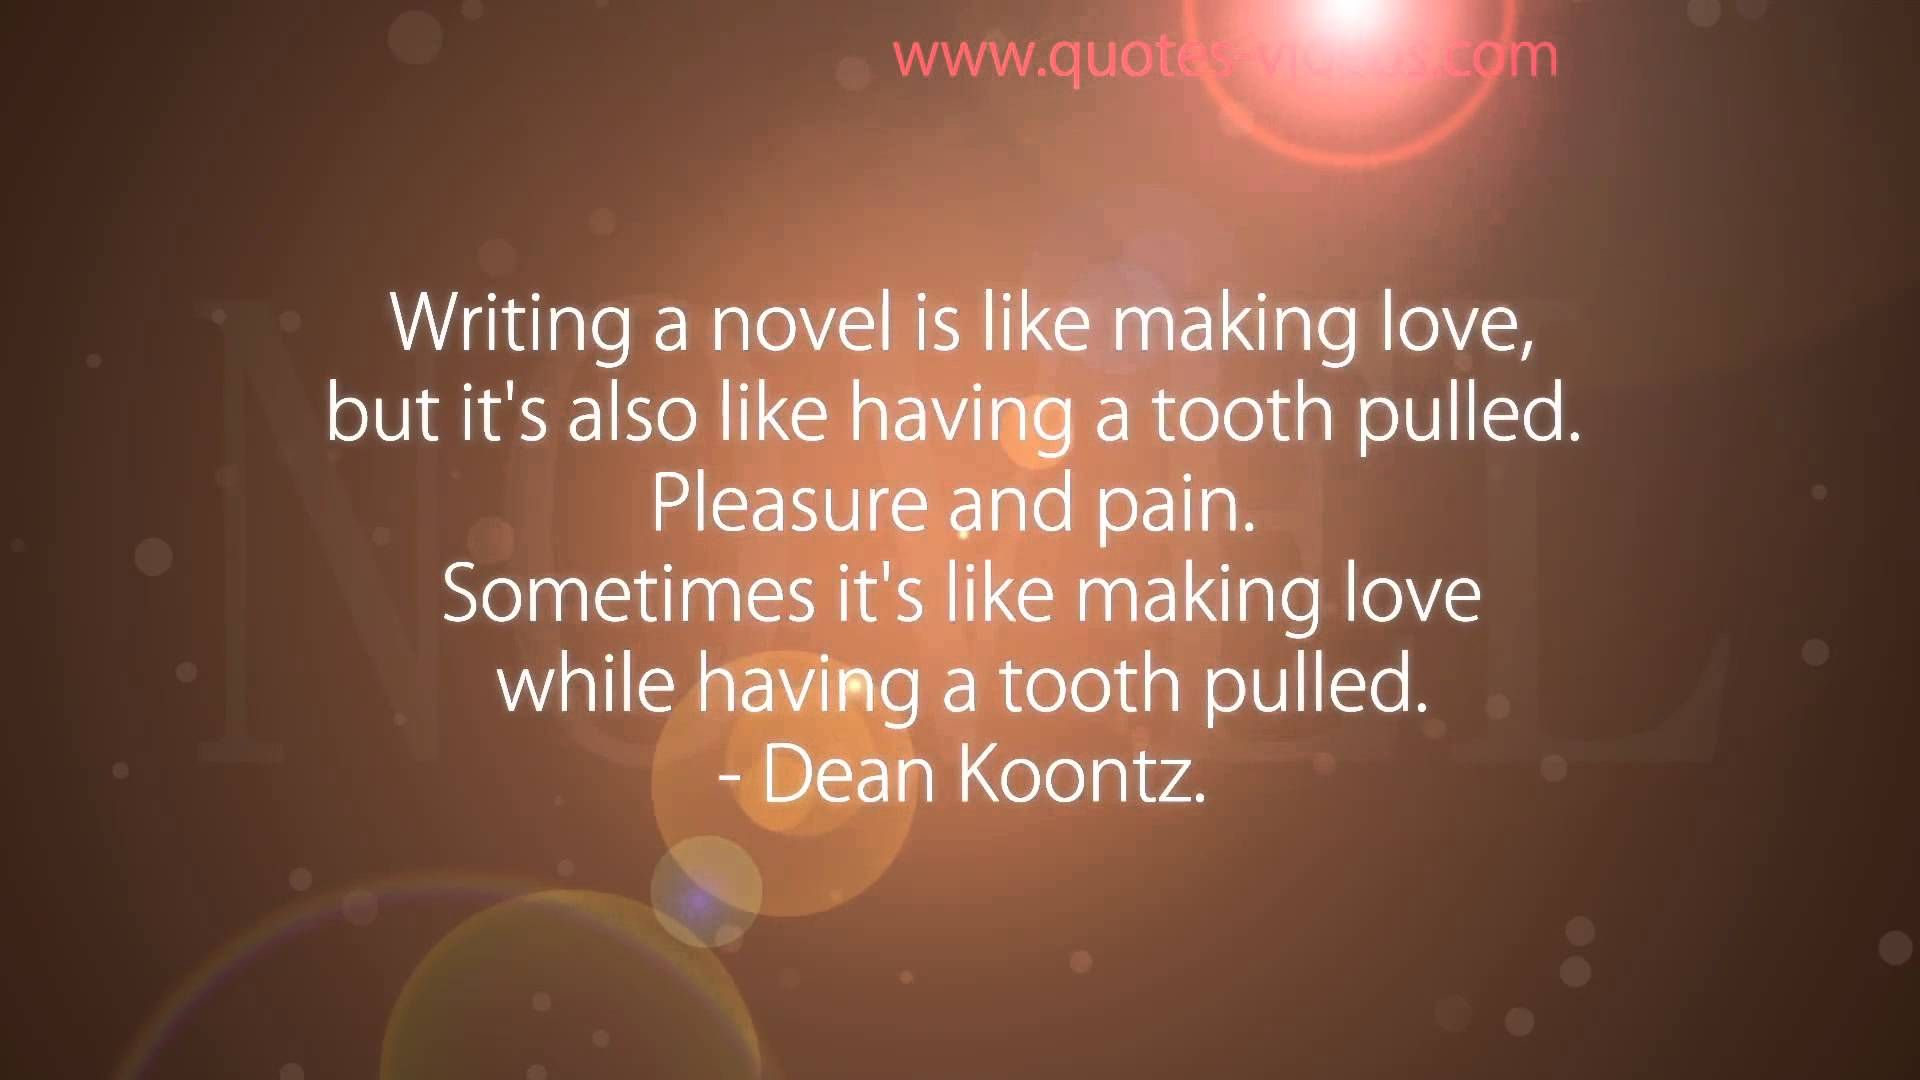 053 Writing Quotes | Novel Writing Advice Quotes | Famous Authors